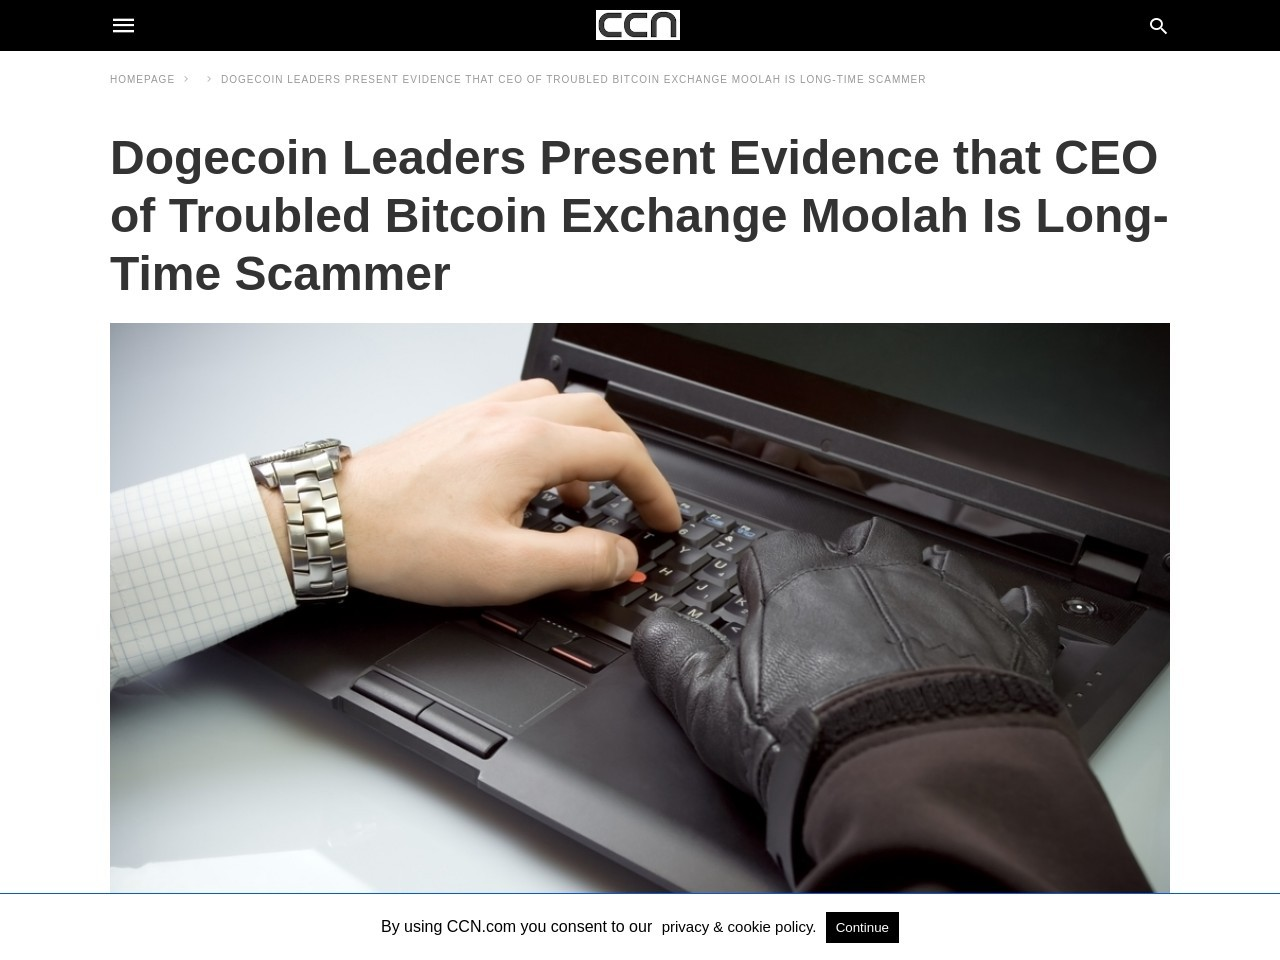 Dogecoin Leaders Present Evidence that CEO of Troubled Bitcoin Exchange Moolah Is Long-Time Scammer